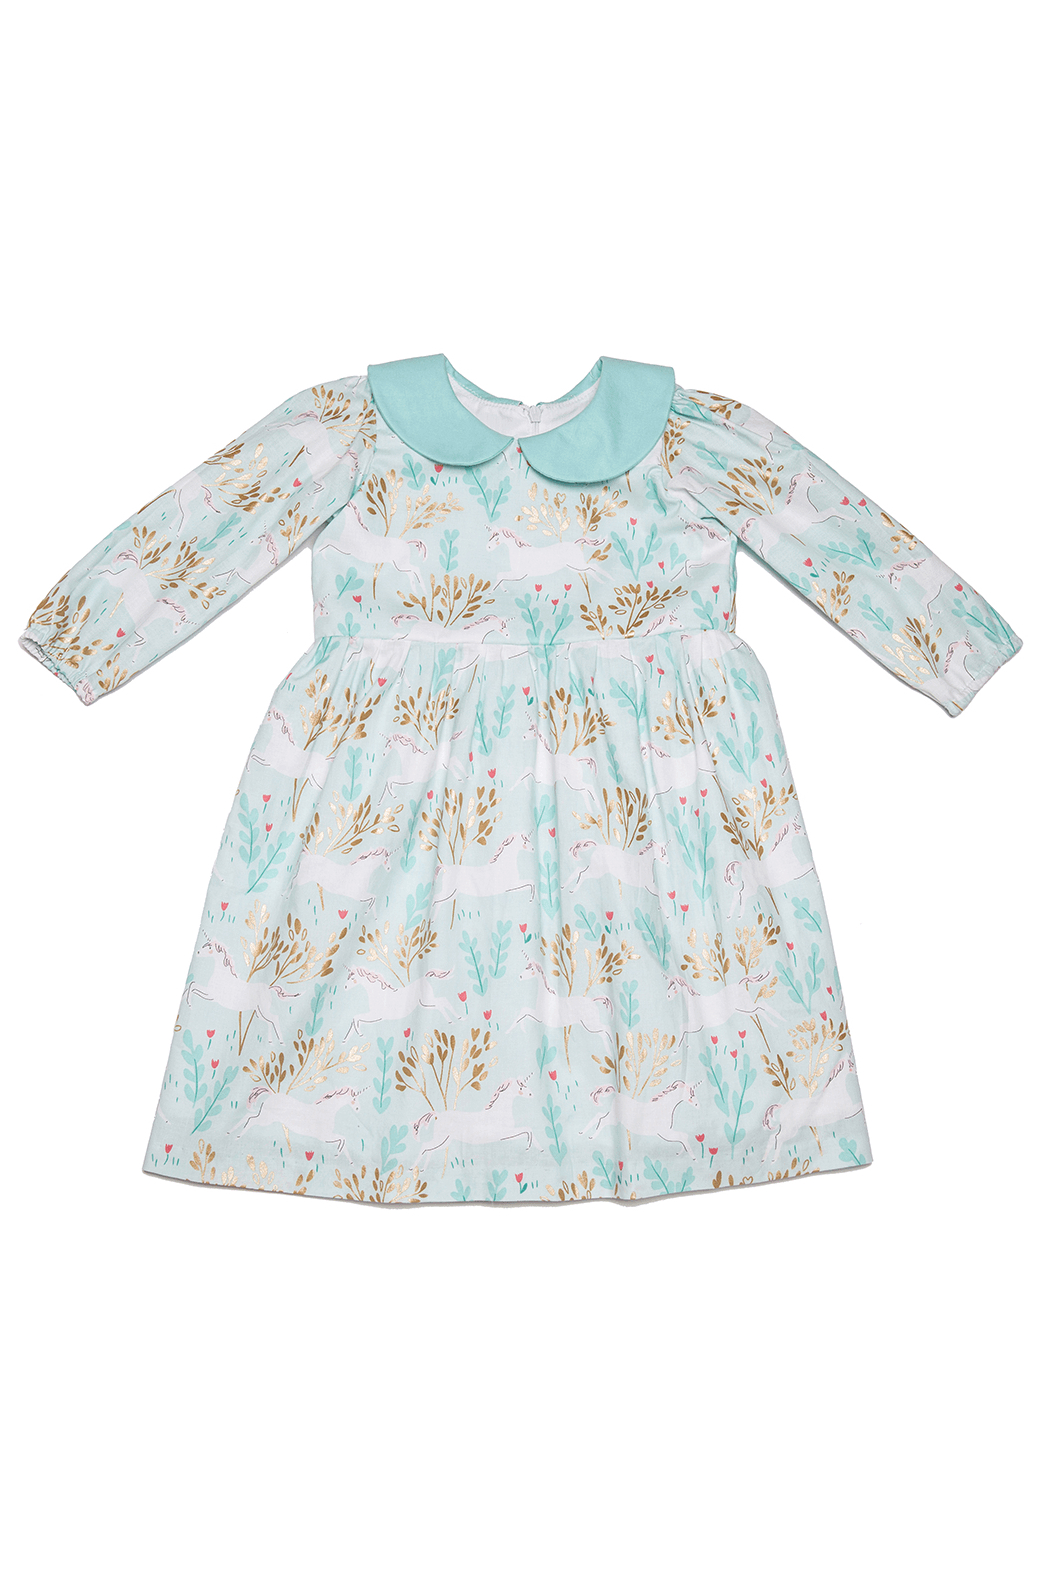 Mandy by Gema Virginia Dress Unicorn Forest Mint - Front Full Image